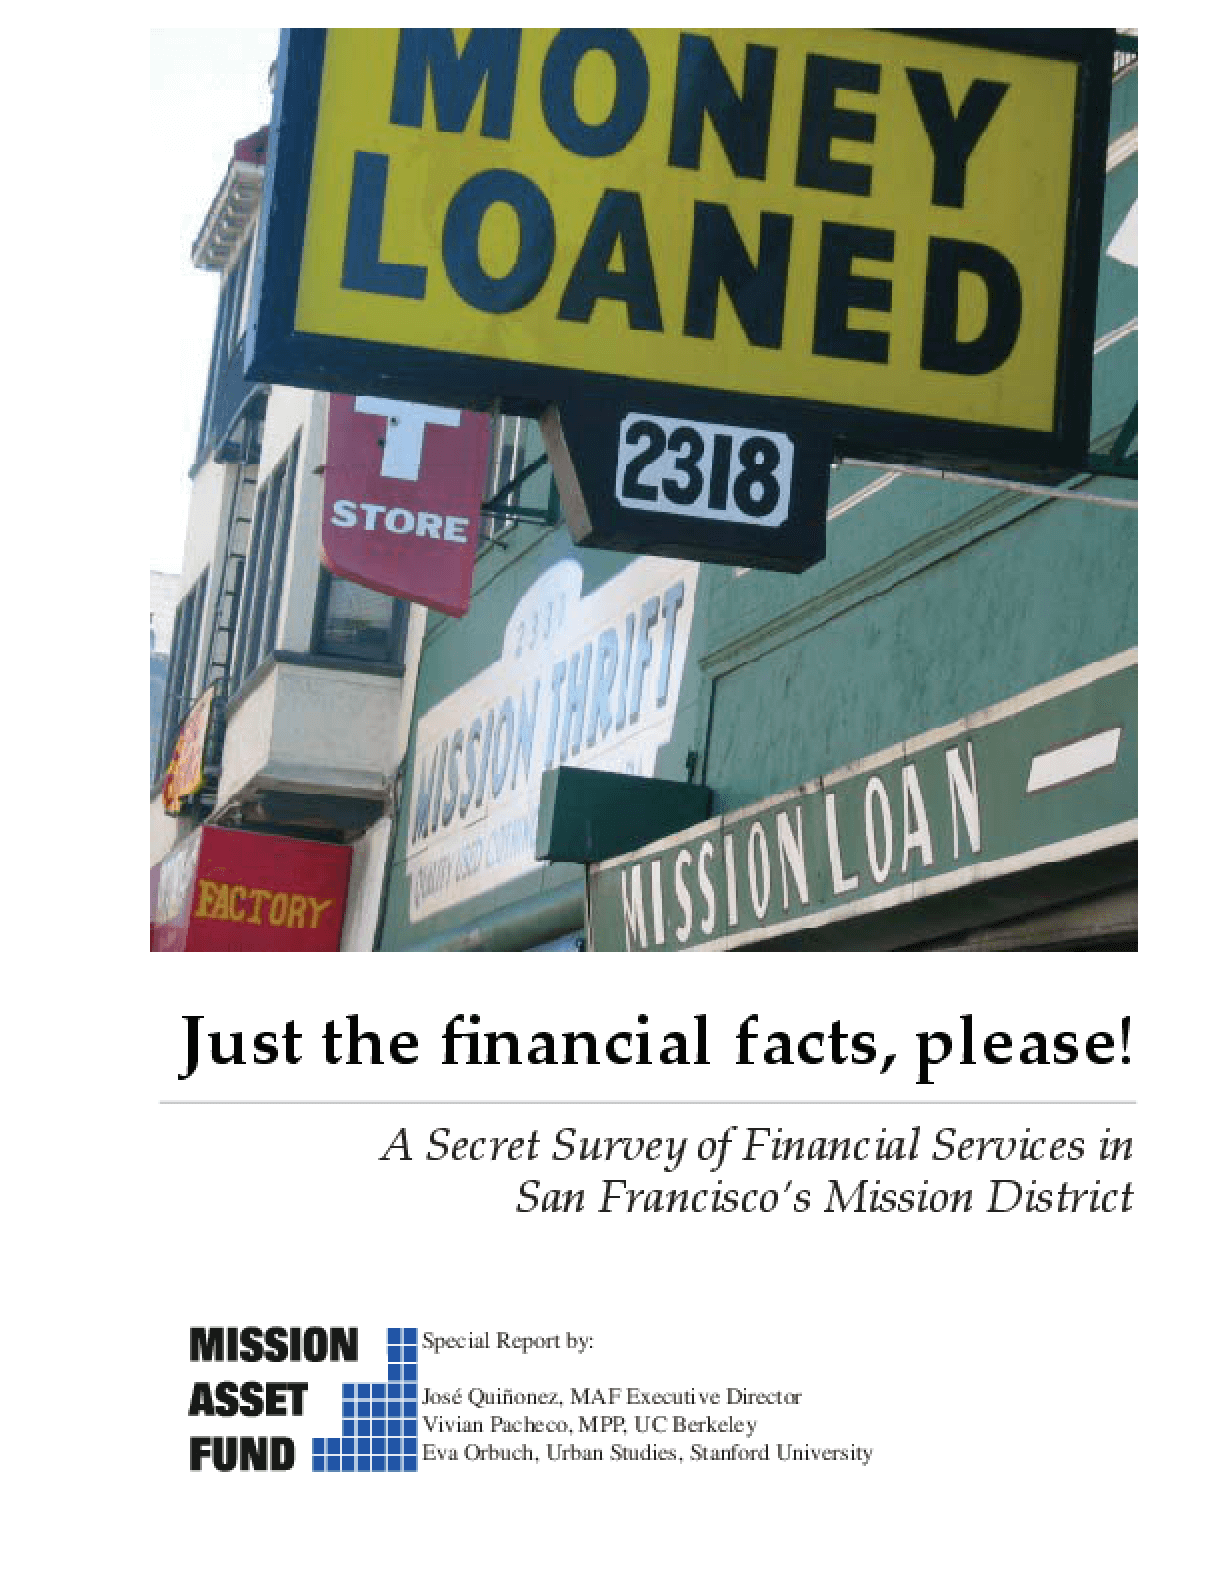 Just the Financial Facts Please! A Secret Survey of Financial Services in San Francisco's Mission District